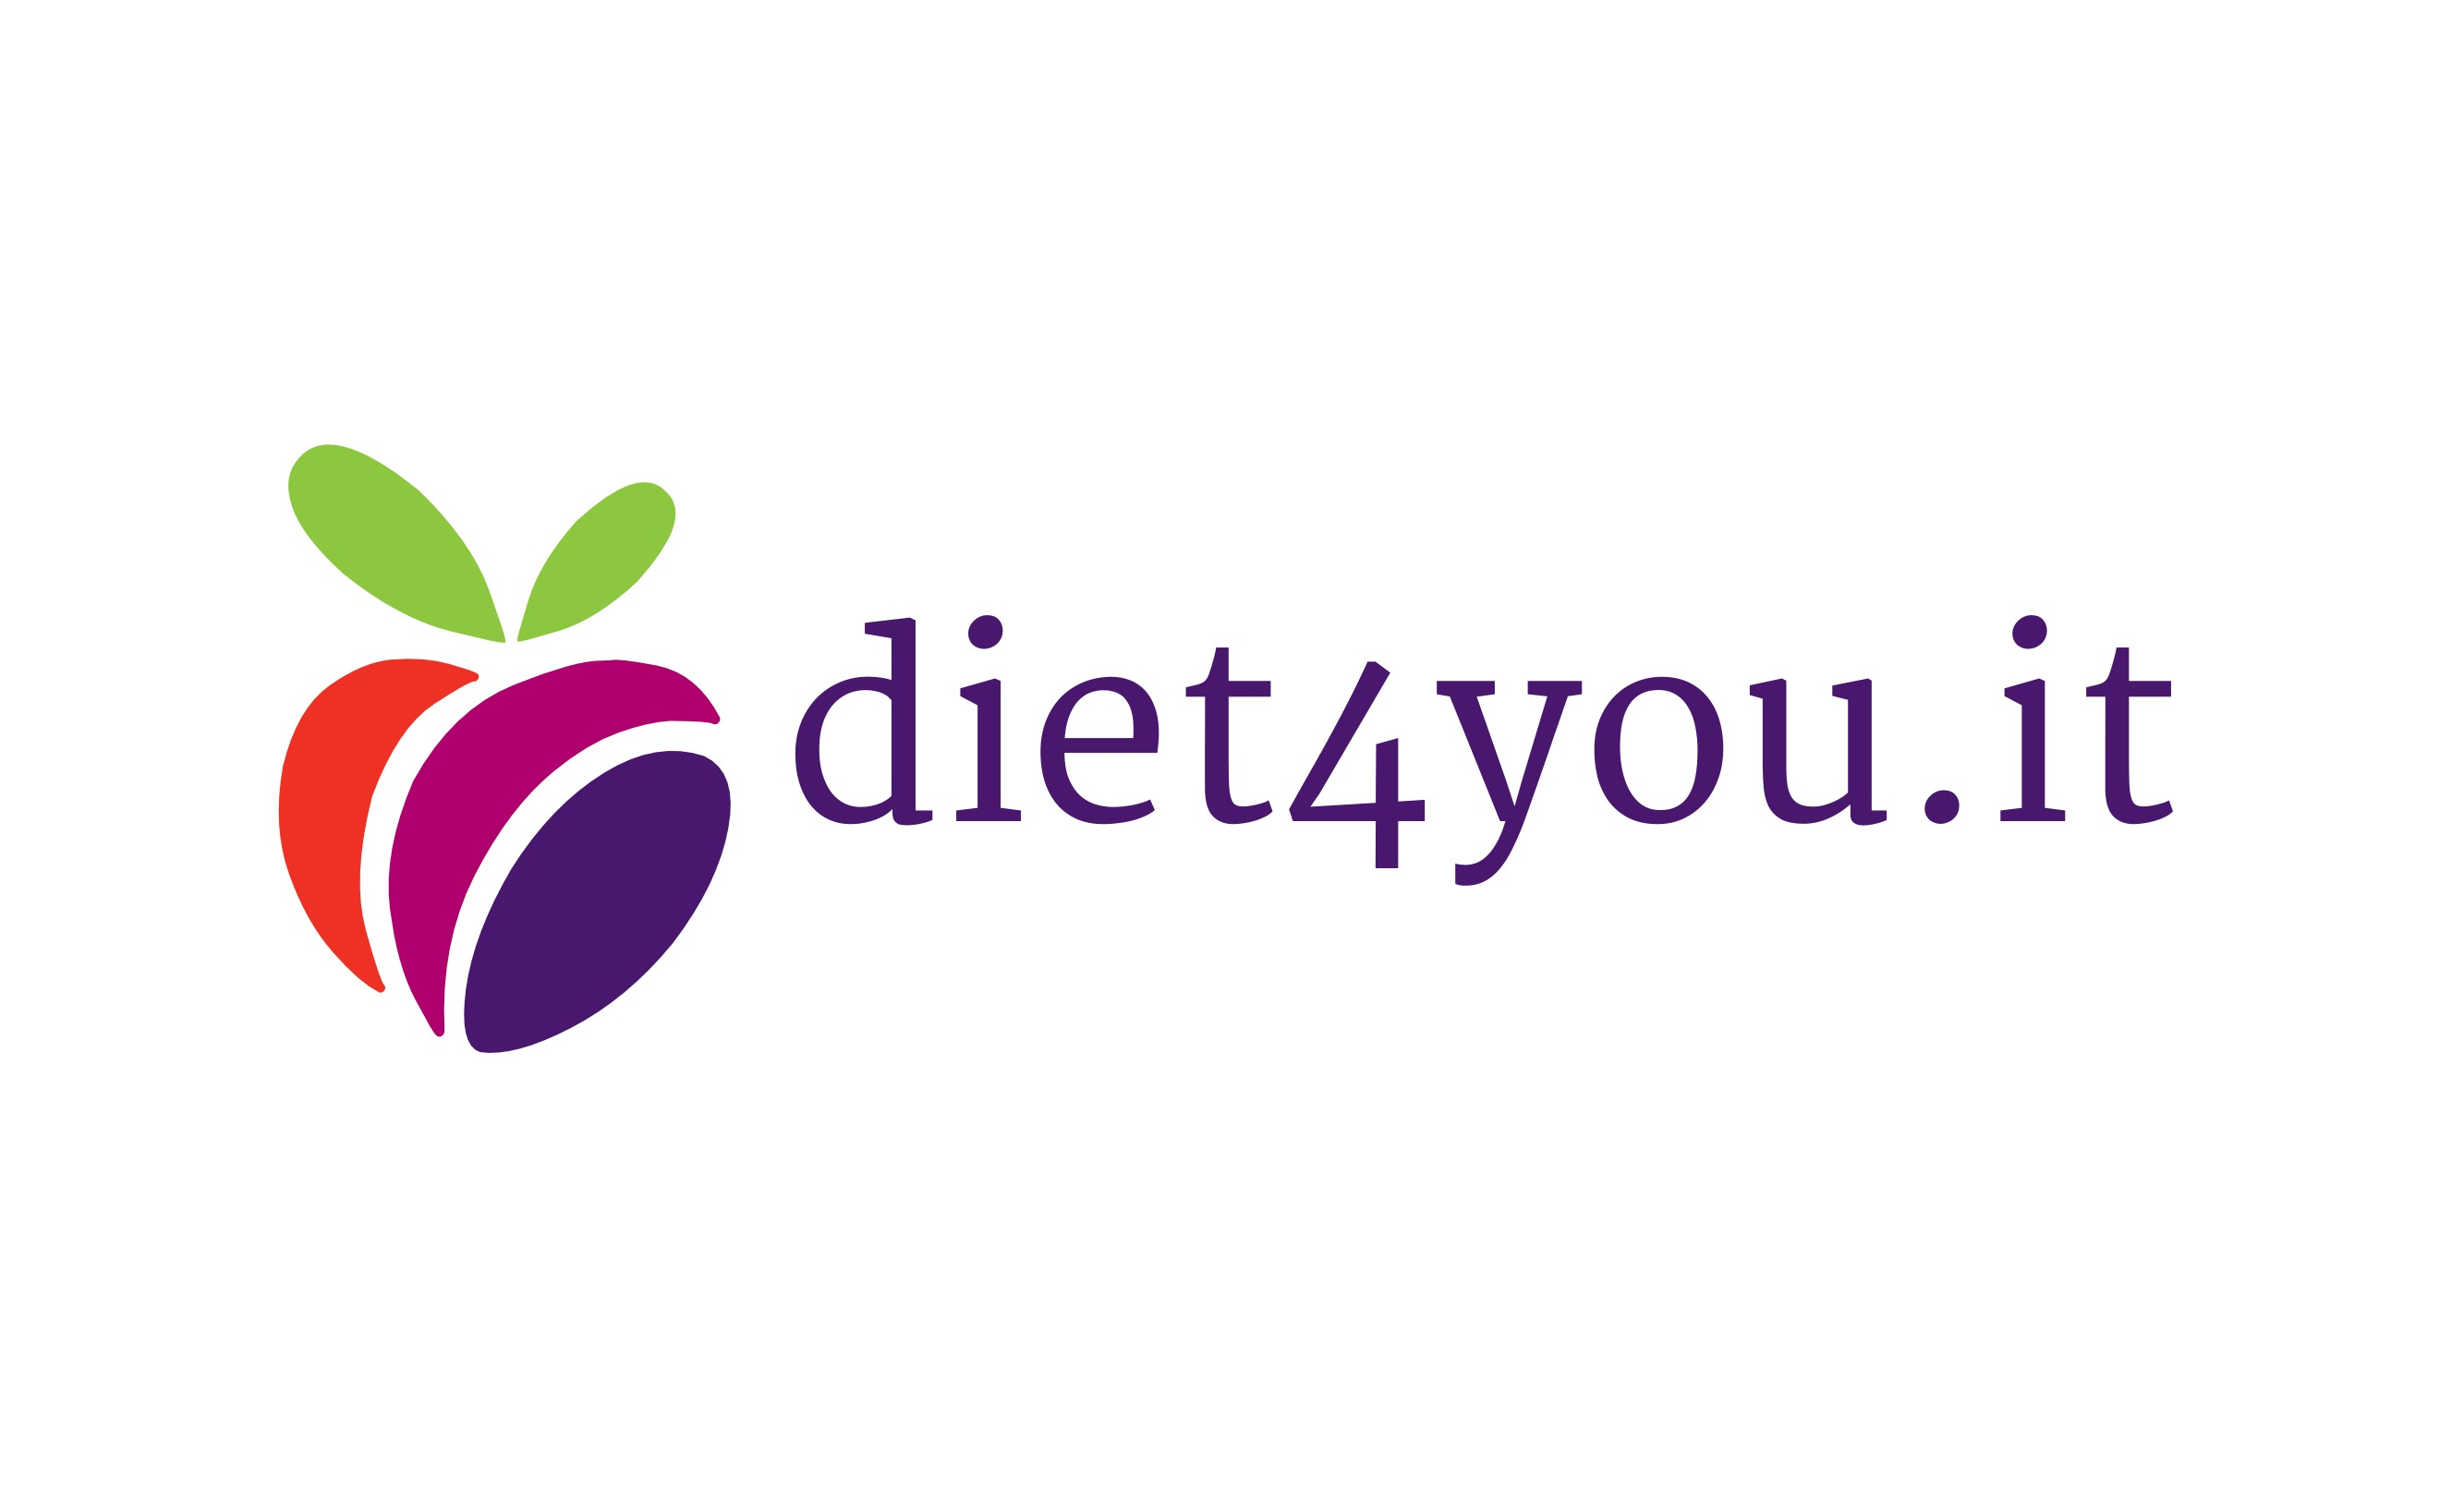 diet4you